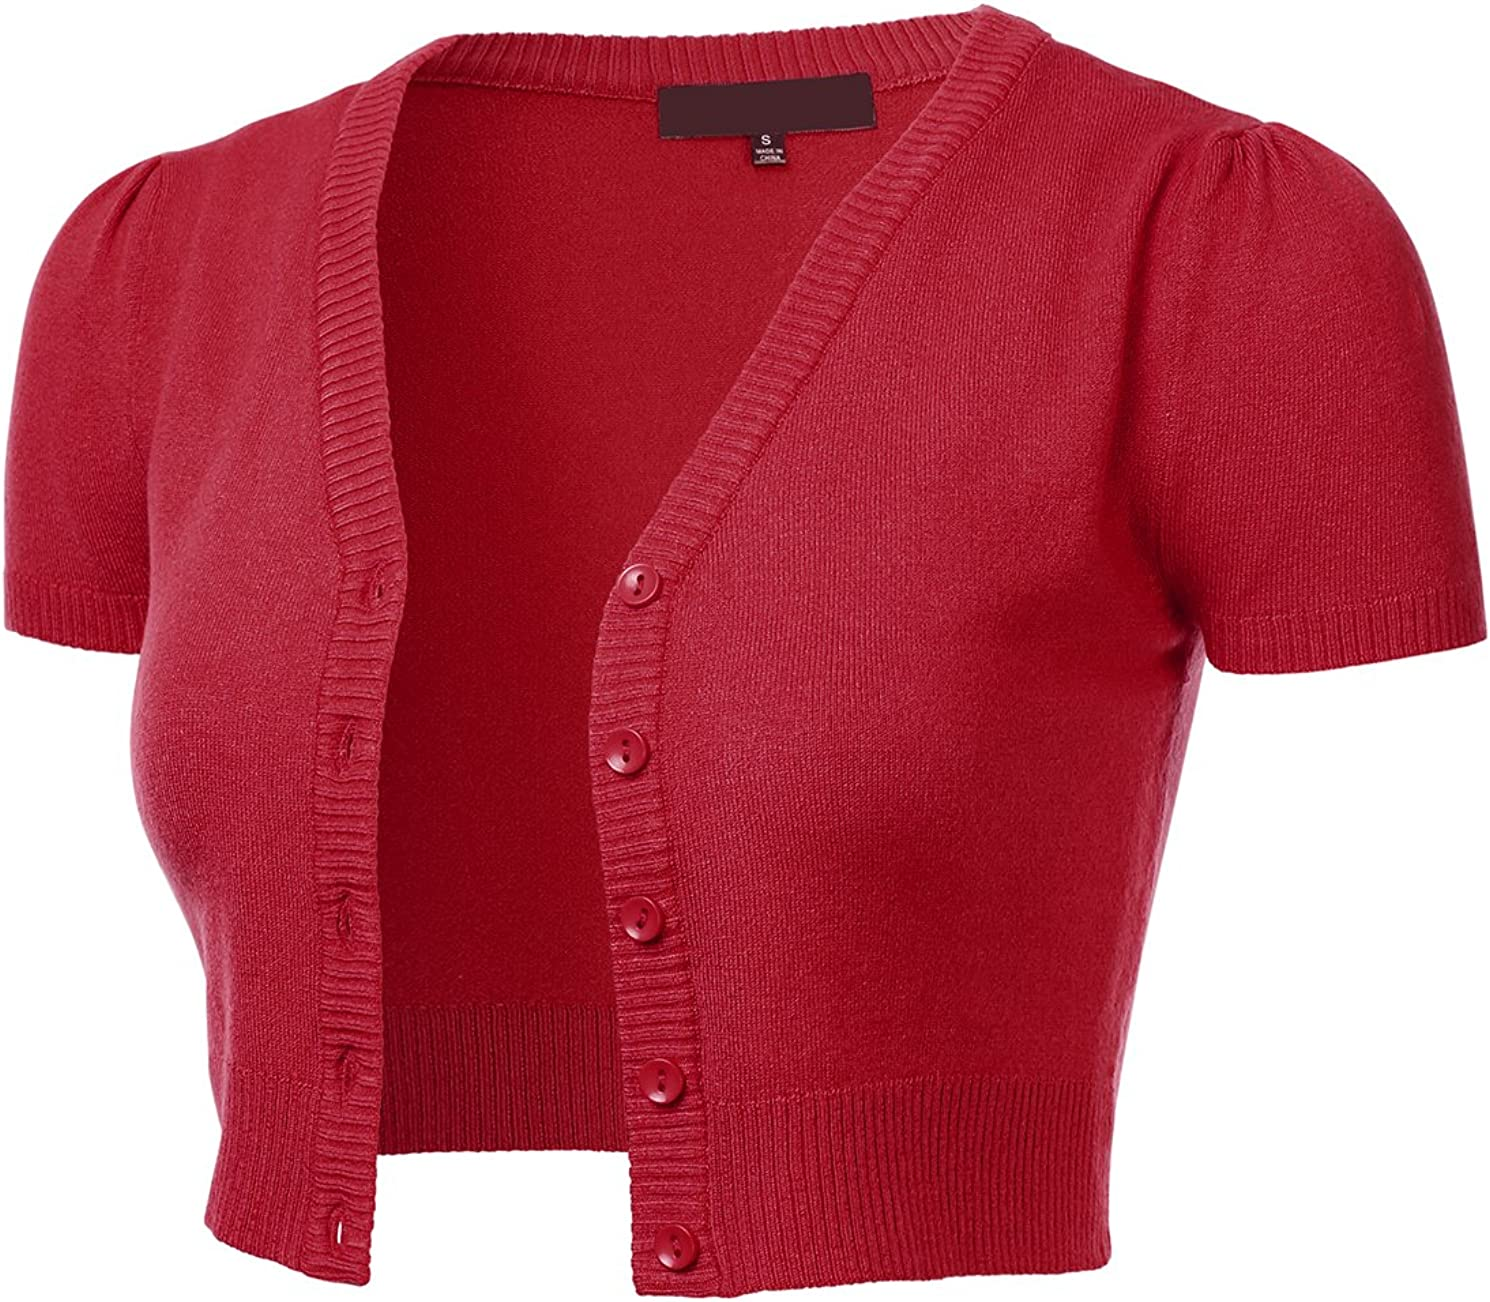 FLORIA Womens Button Down Short Sleeve Cropped Bolero Cardigan Sweater RED M